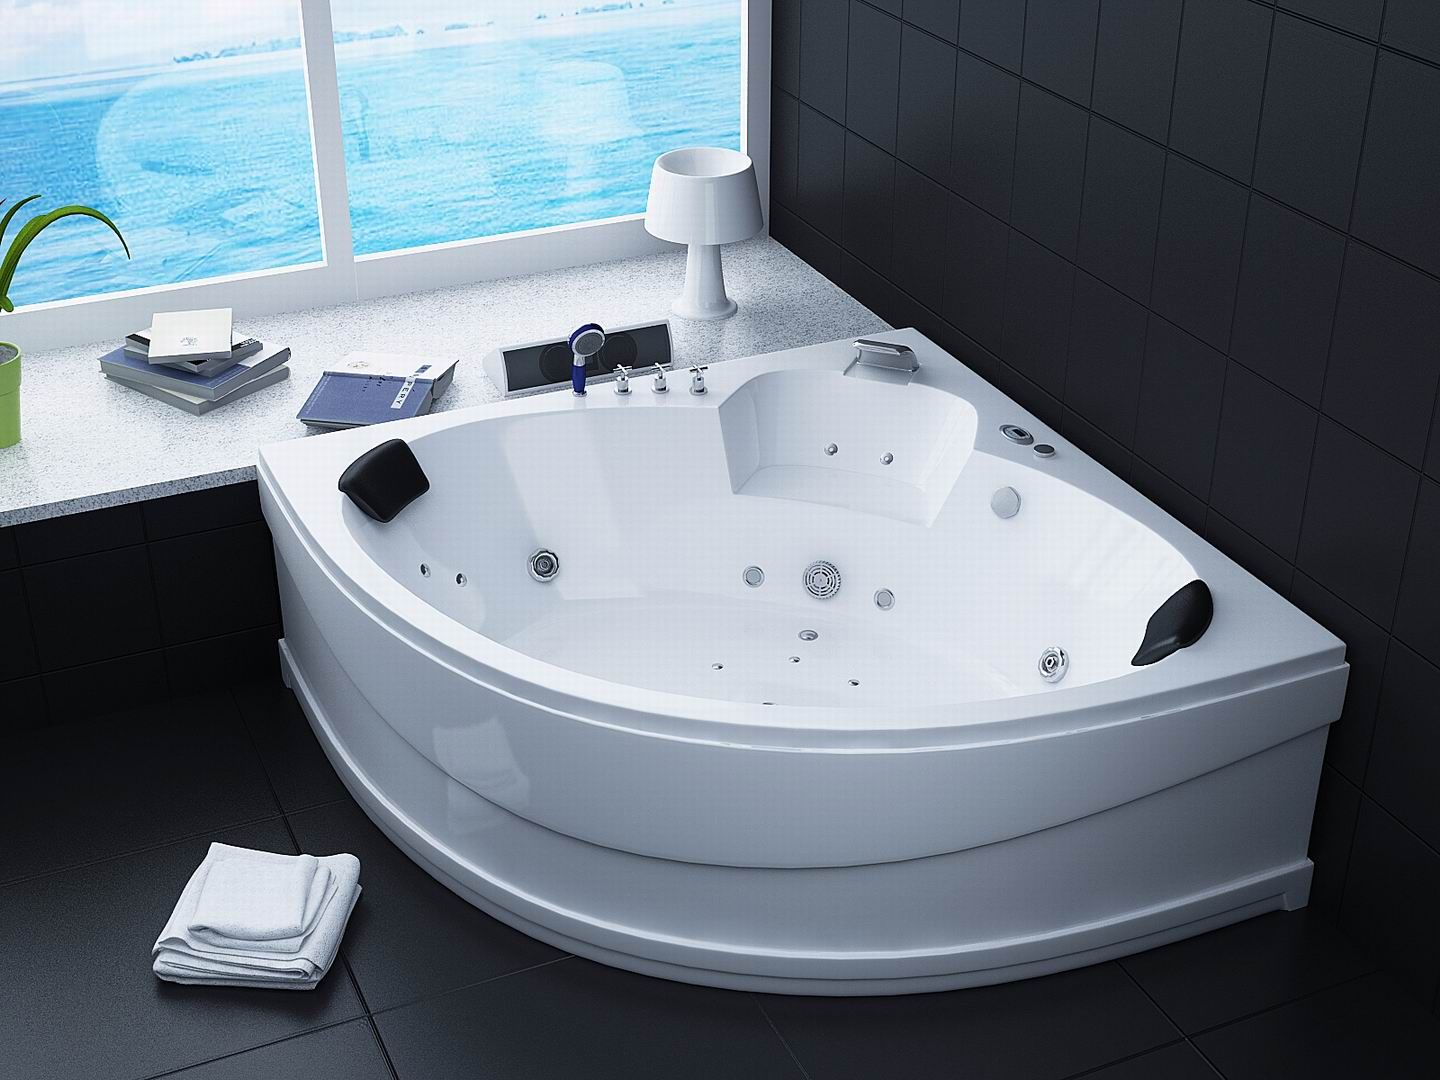 Bathtubs China Jacuzzi Bathtub Mt Nr1801 Large Image For Jacuzzi Bathtub Dream House